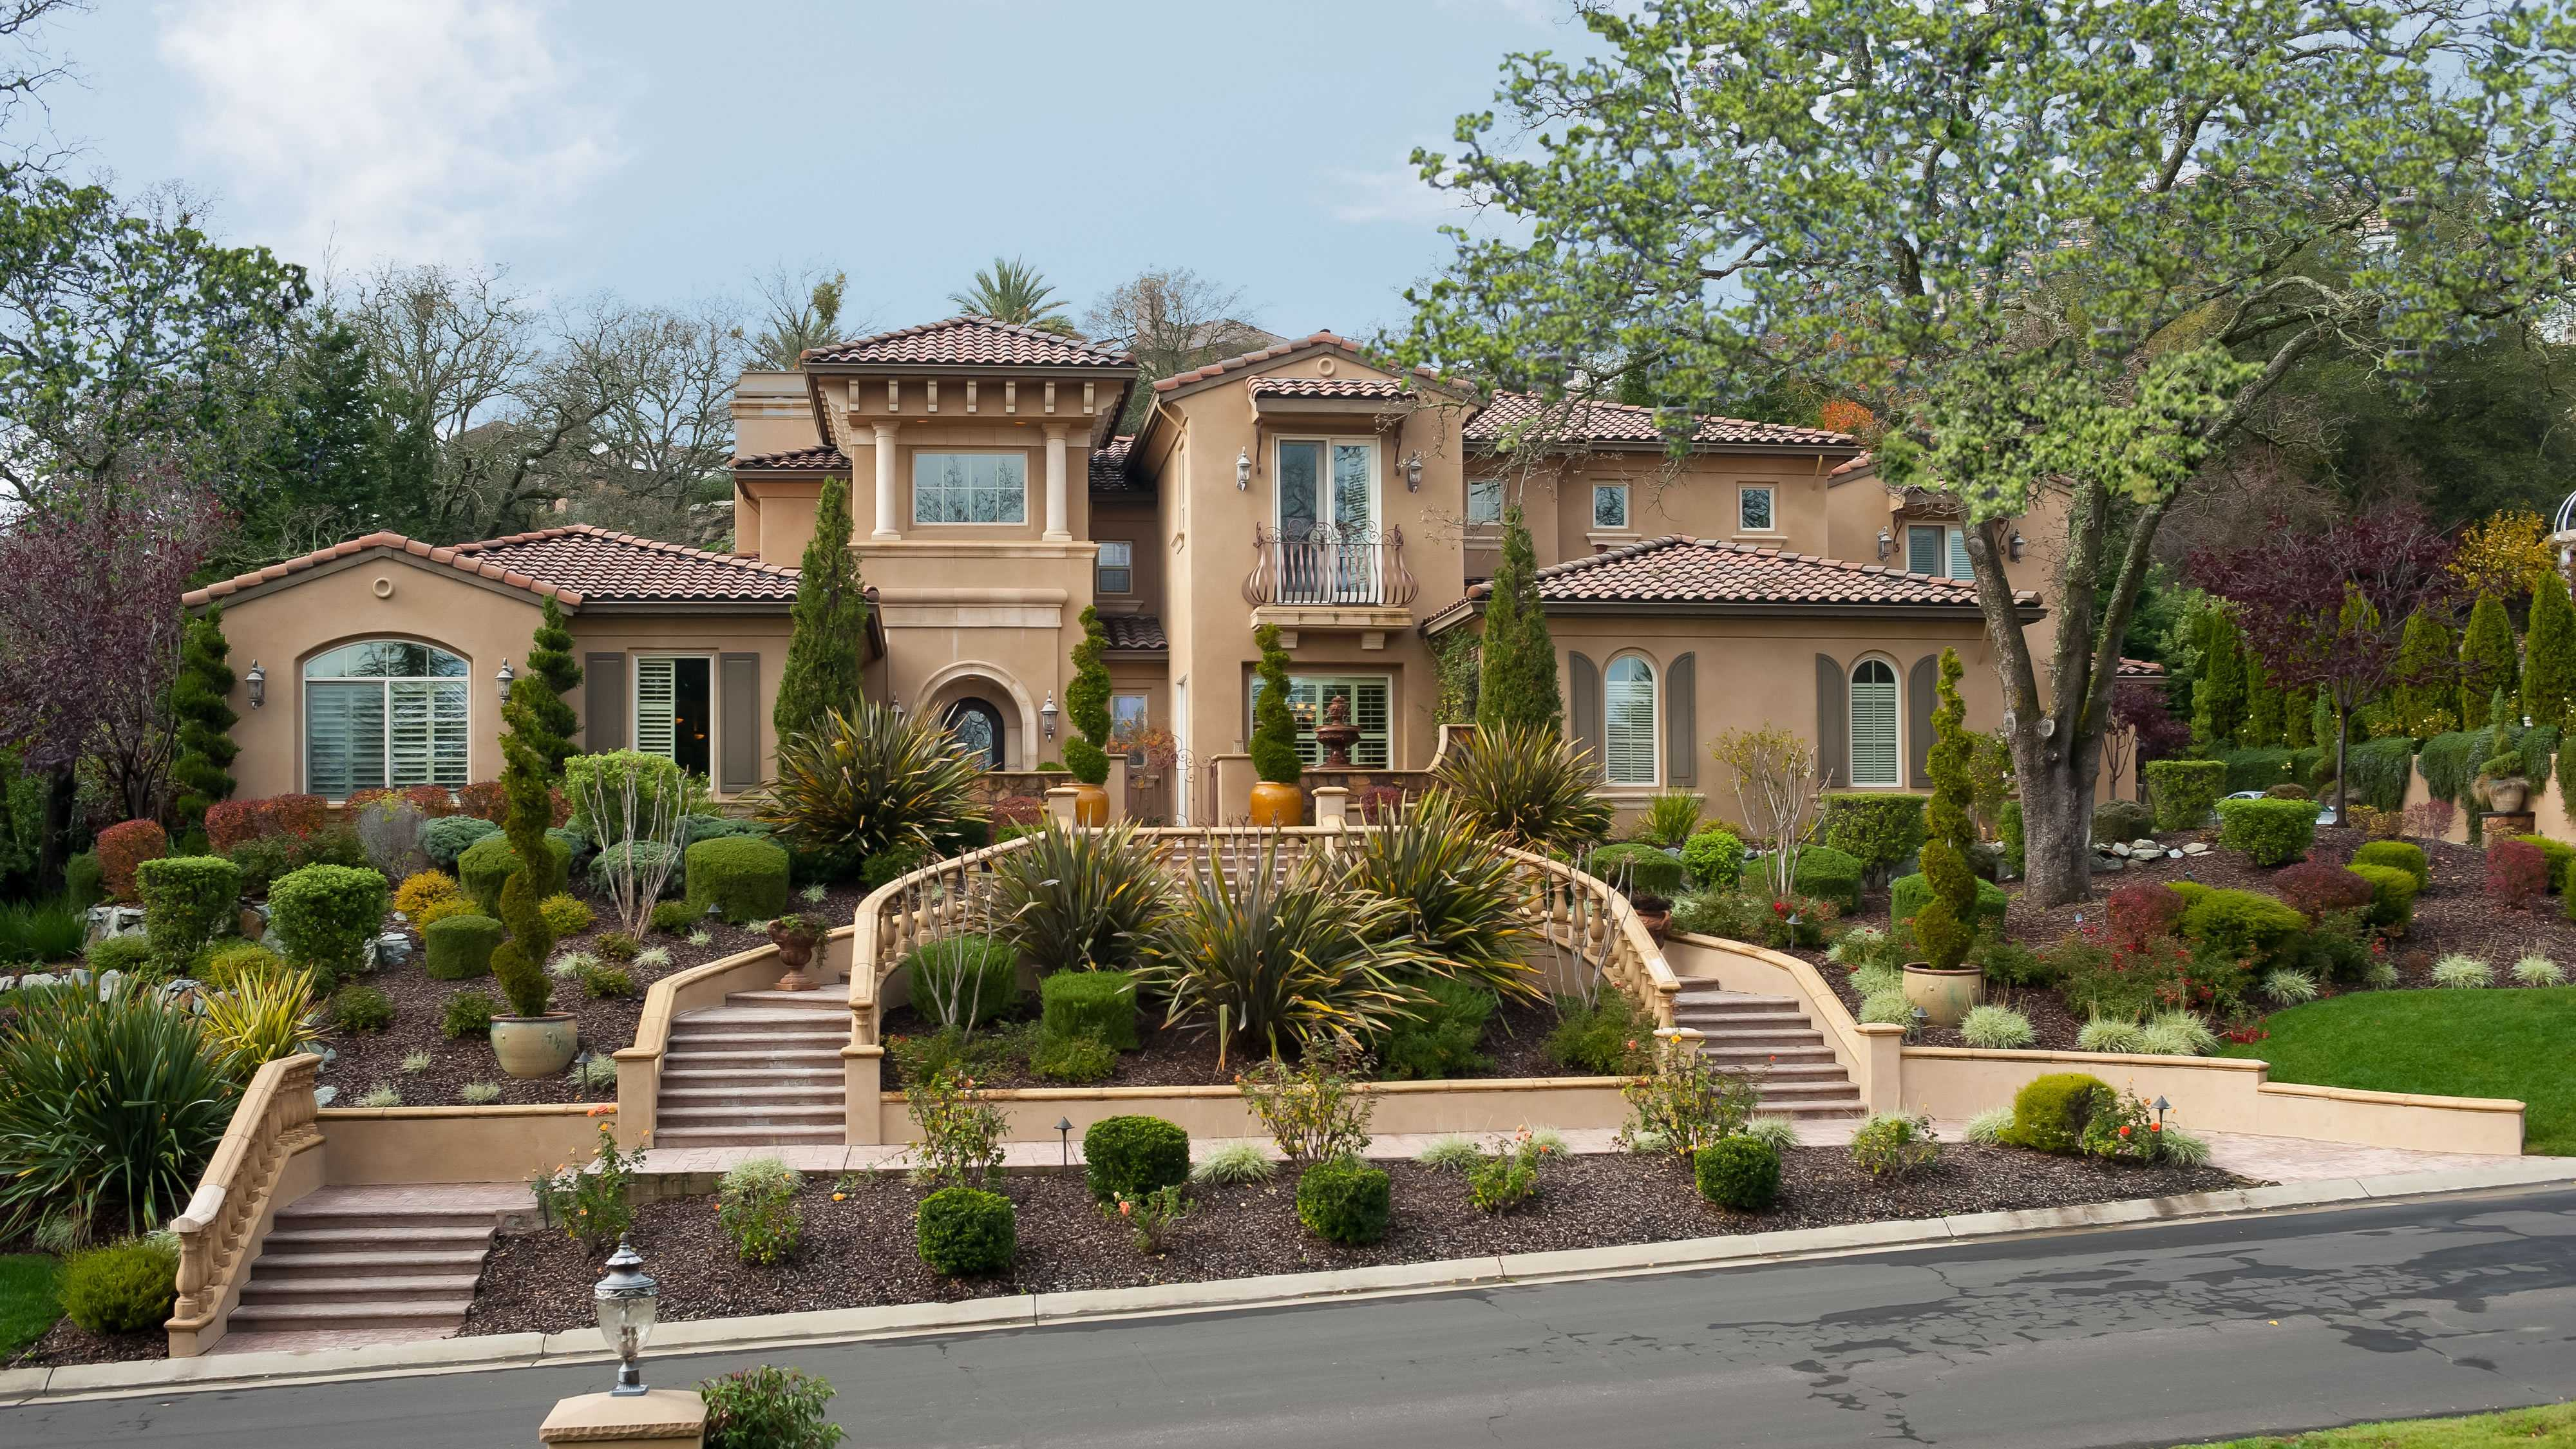 Cycle through this slideshow to see photos of the Granite Bay mansion that is the grand prize in the Sacramento Dream House Raffle. Proceeds from the raffle benefit the Ronald McDonald House Charities of Northern California.